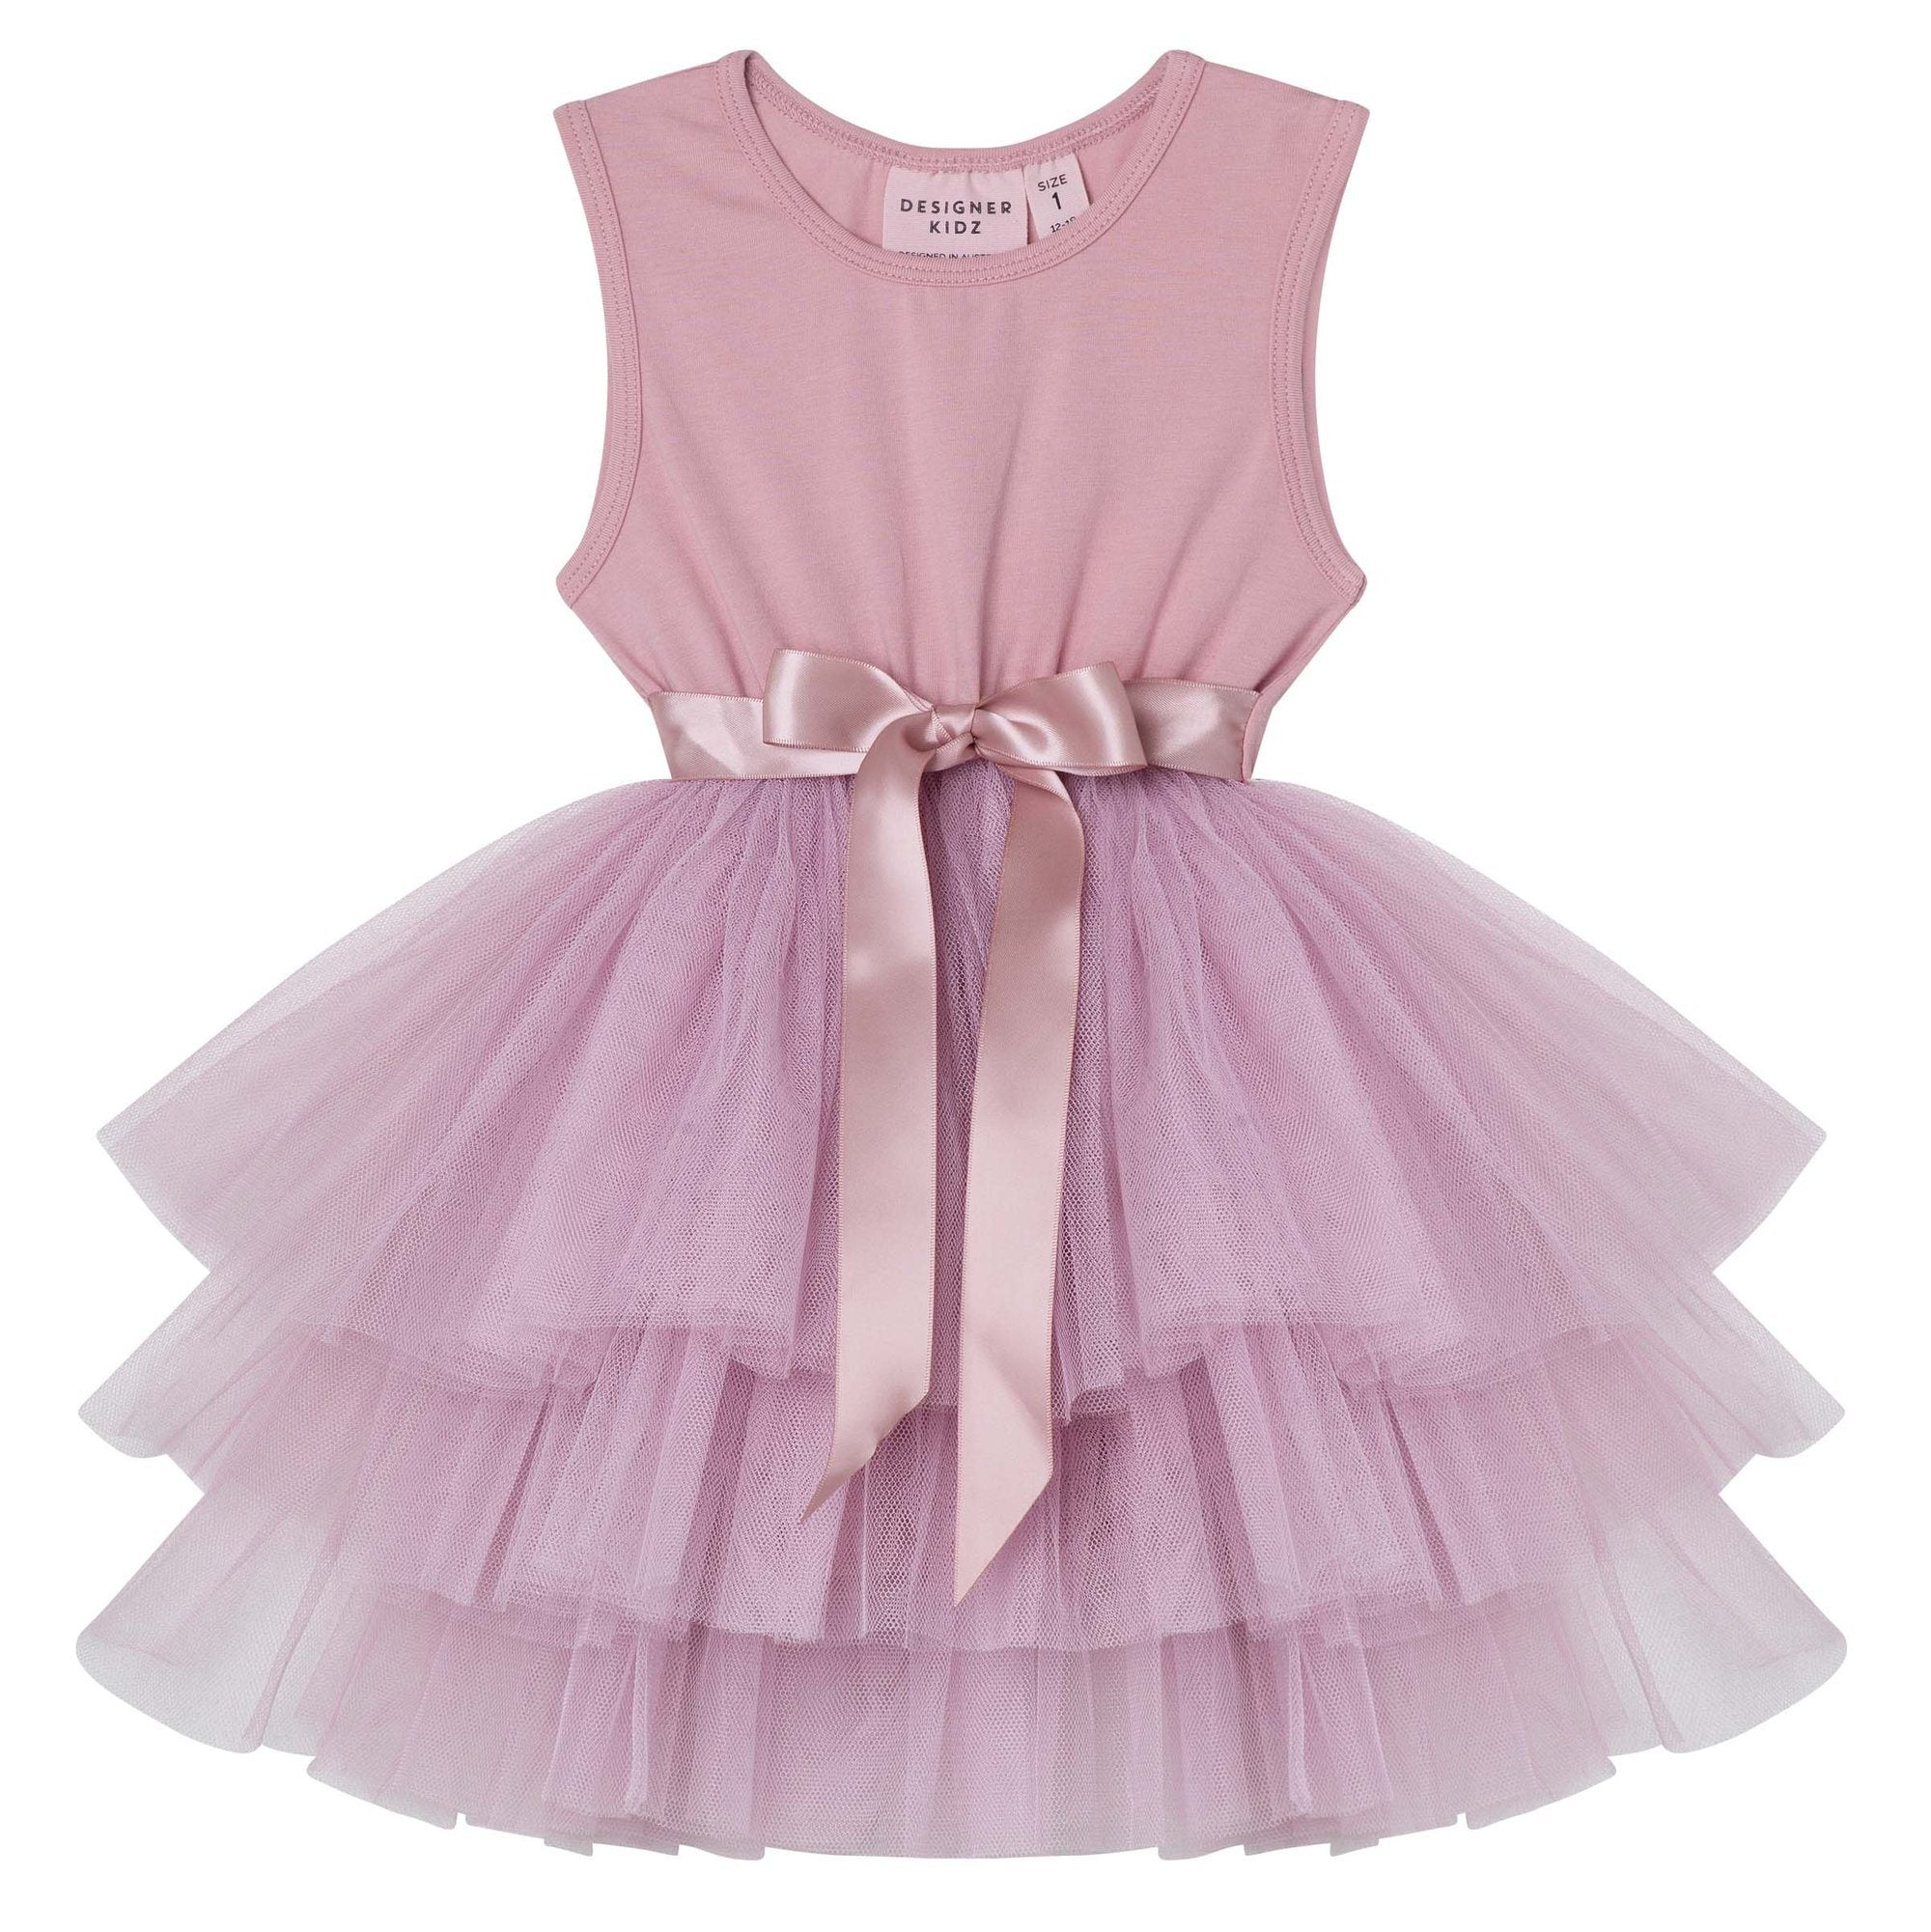 My First Tutu Dress (Truffle)